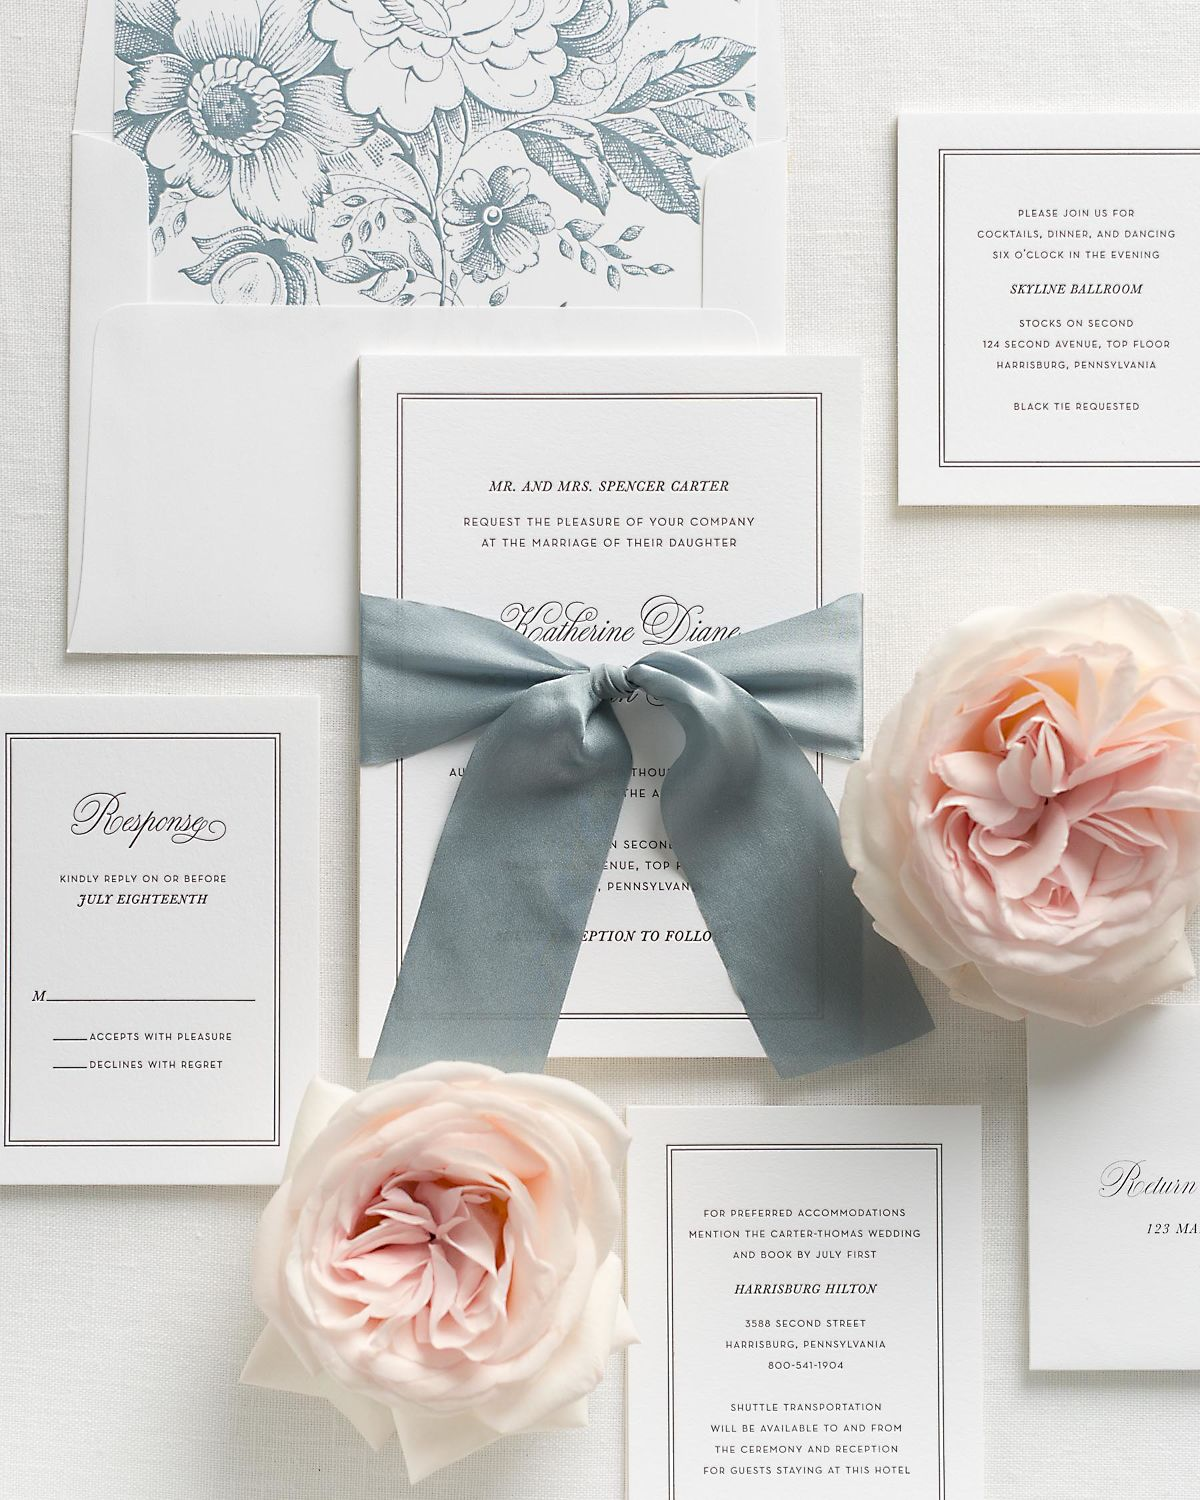 Mineral Wedding Invitations with Whisper Blue Silk Ribbon and Letterpress Printing